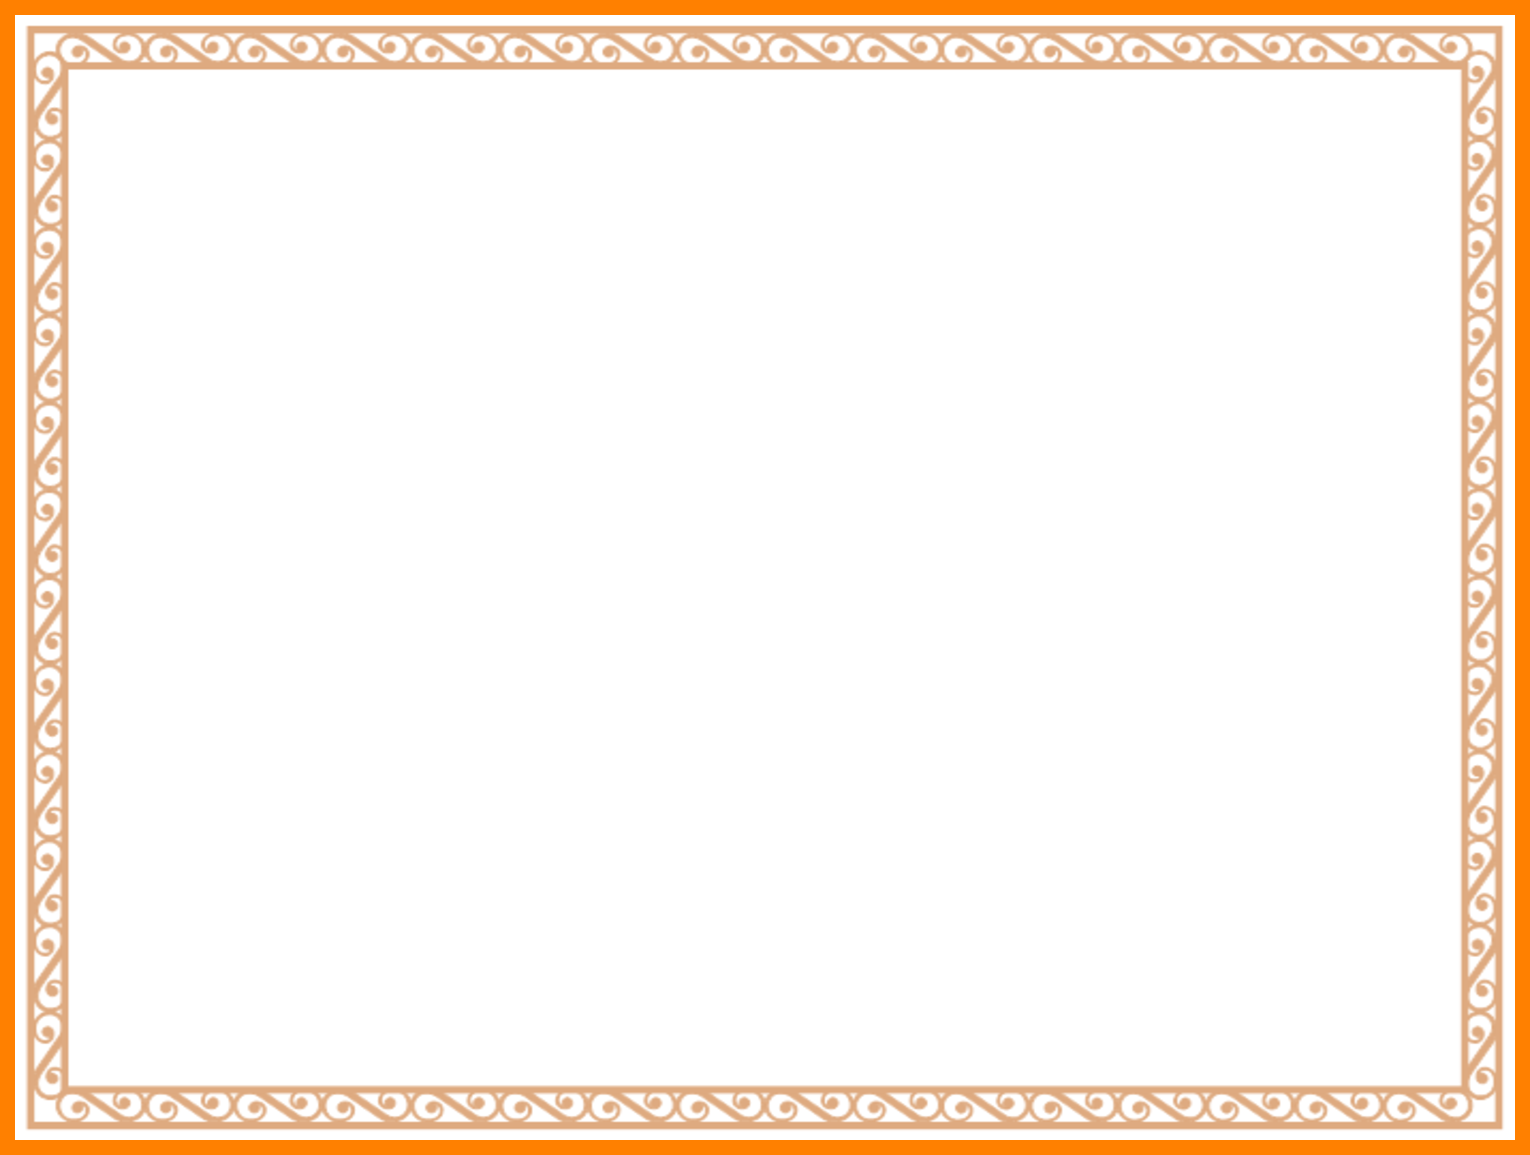 Png Of Border Art - Borders PNG HD Transparent Borders HD.PNG Images. | PlusPNG